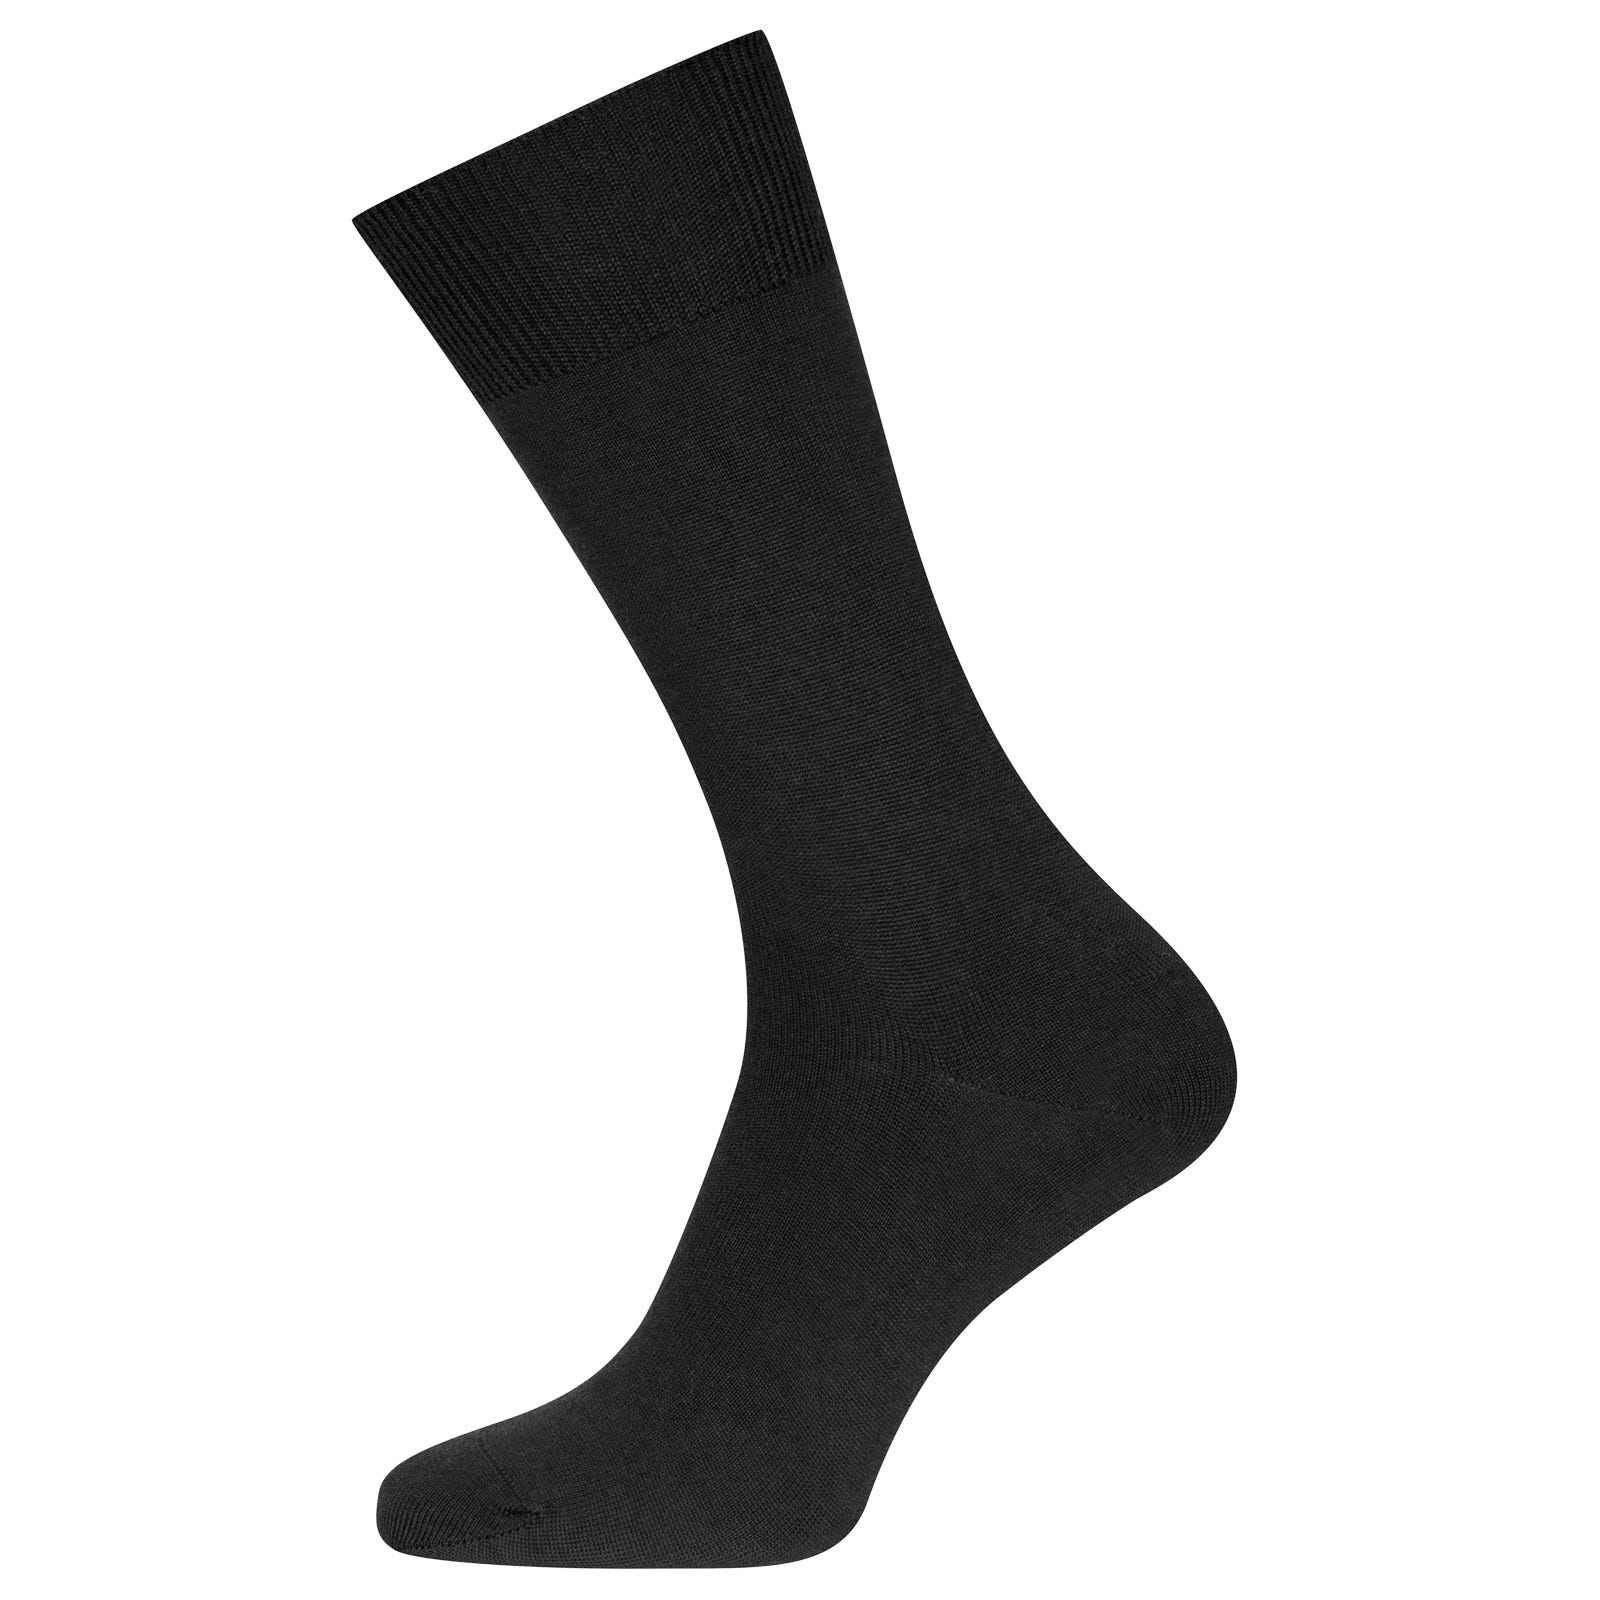 John Smedley eros Sea Island Cotton and Cashmere Socks in Black-S/M